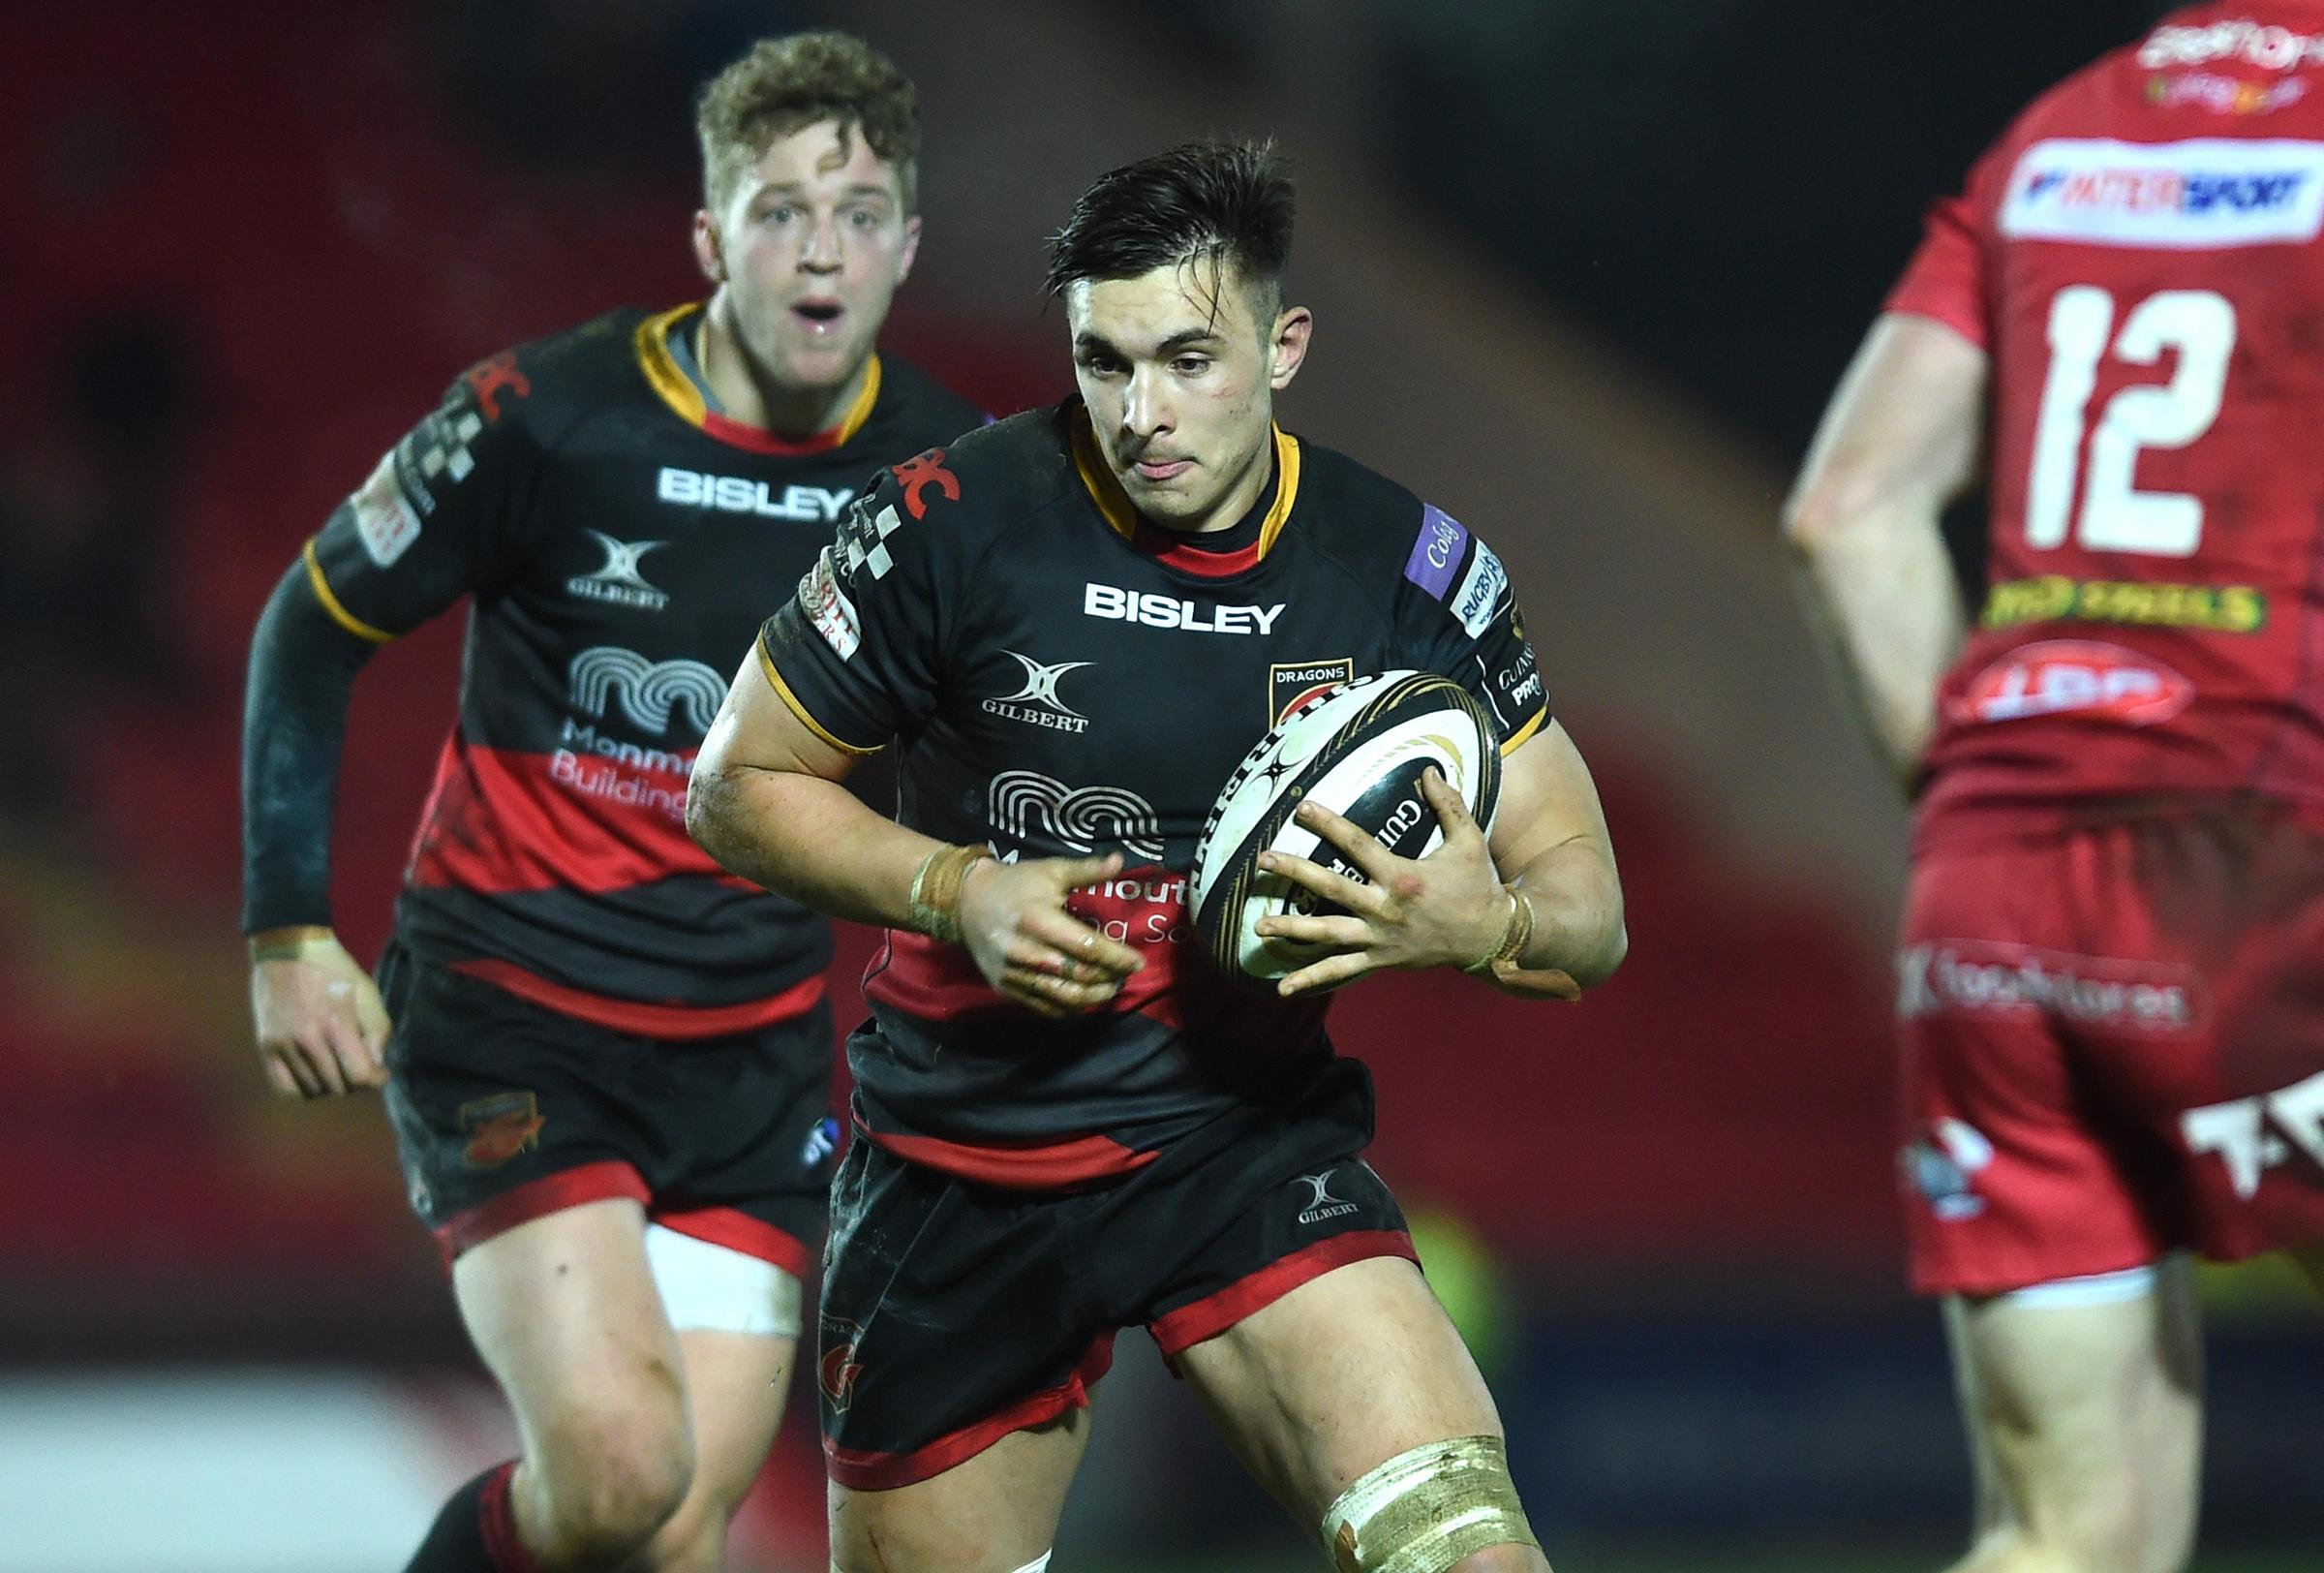 BRIGHT PROSPECT: Dragons back rower Taine Basham scored a hat-trick for Wales Under-20s in Italy